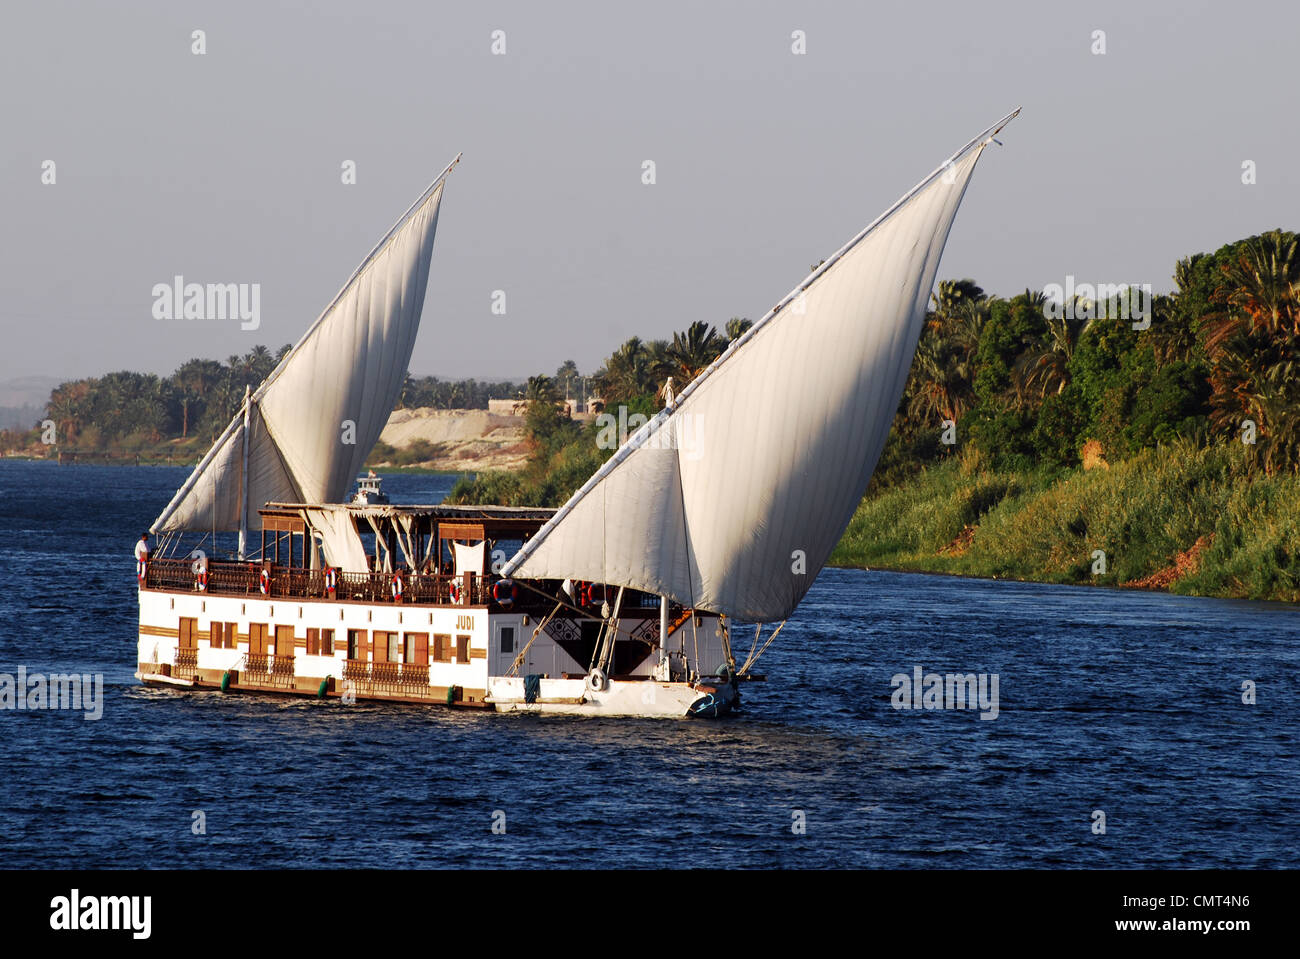 Double sail motorised ship number 3077 Stock Photo